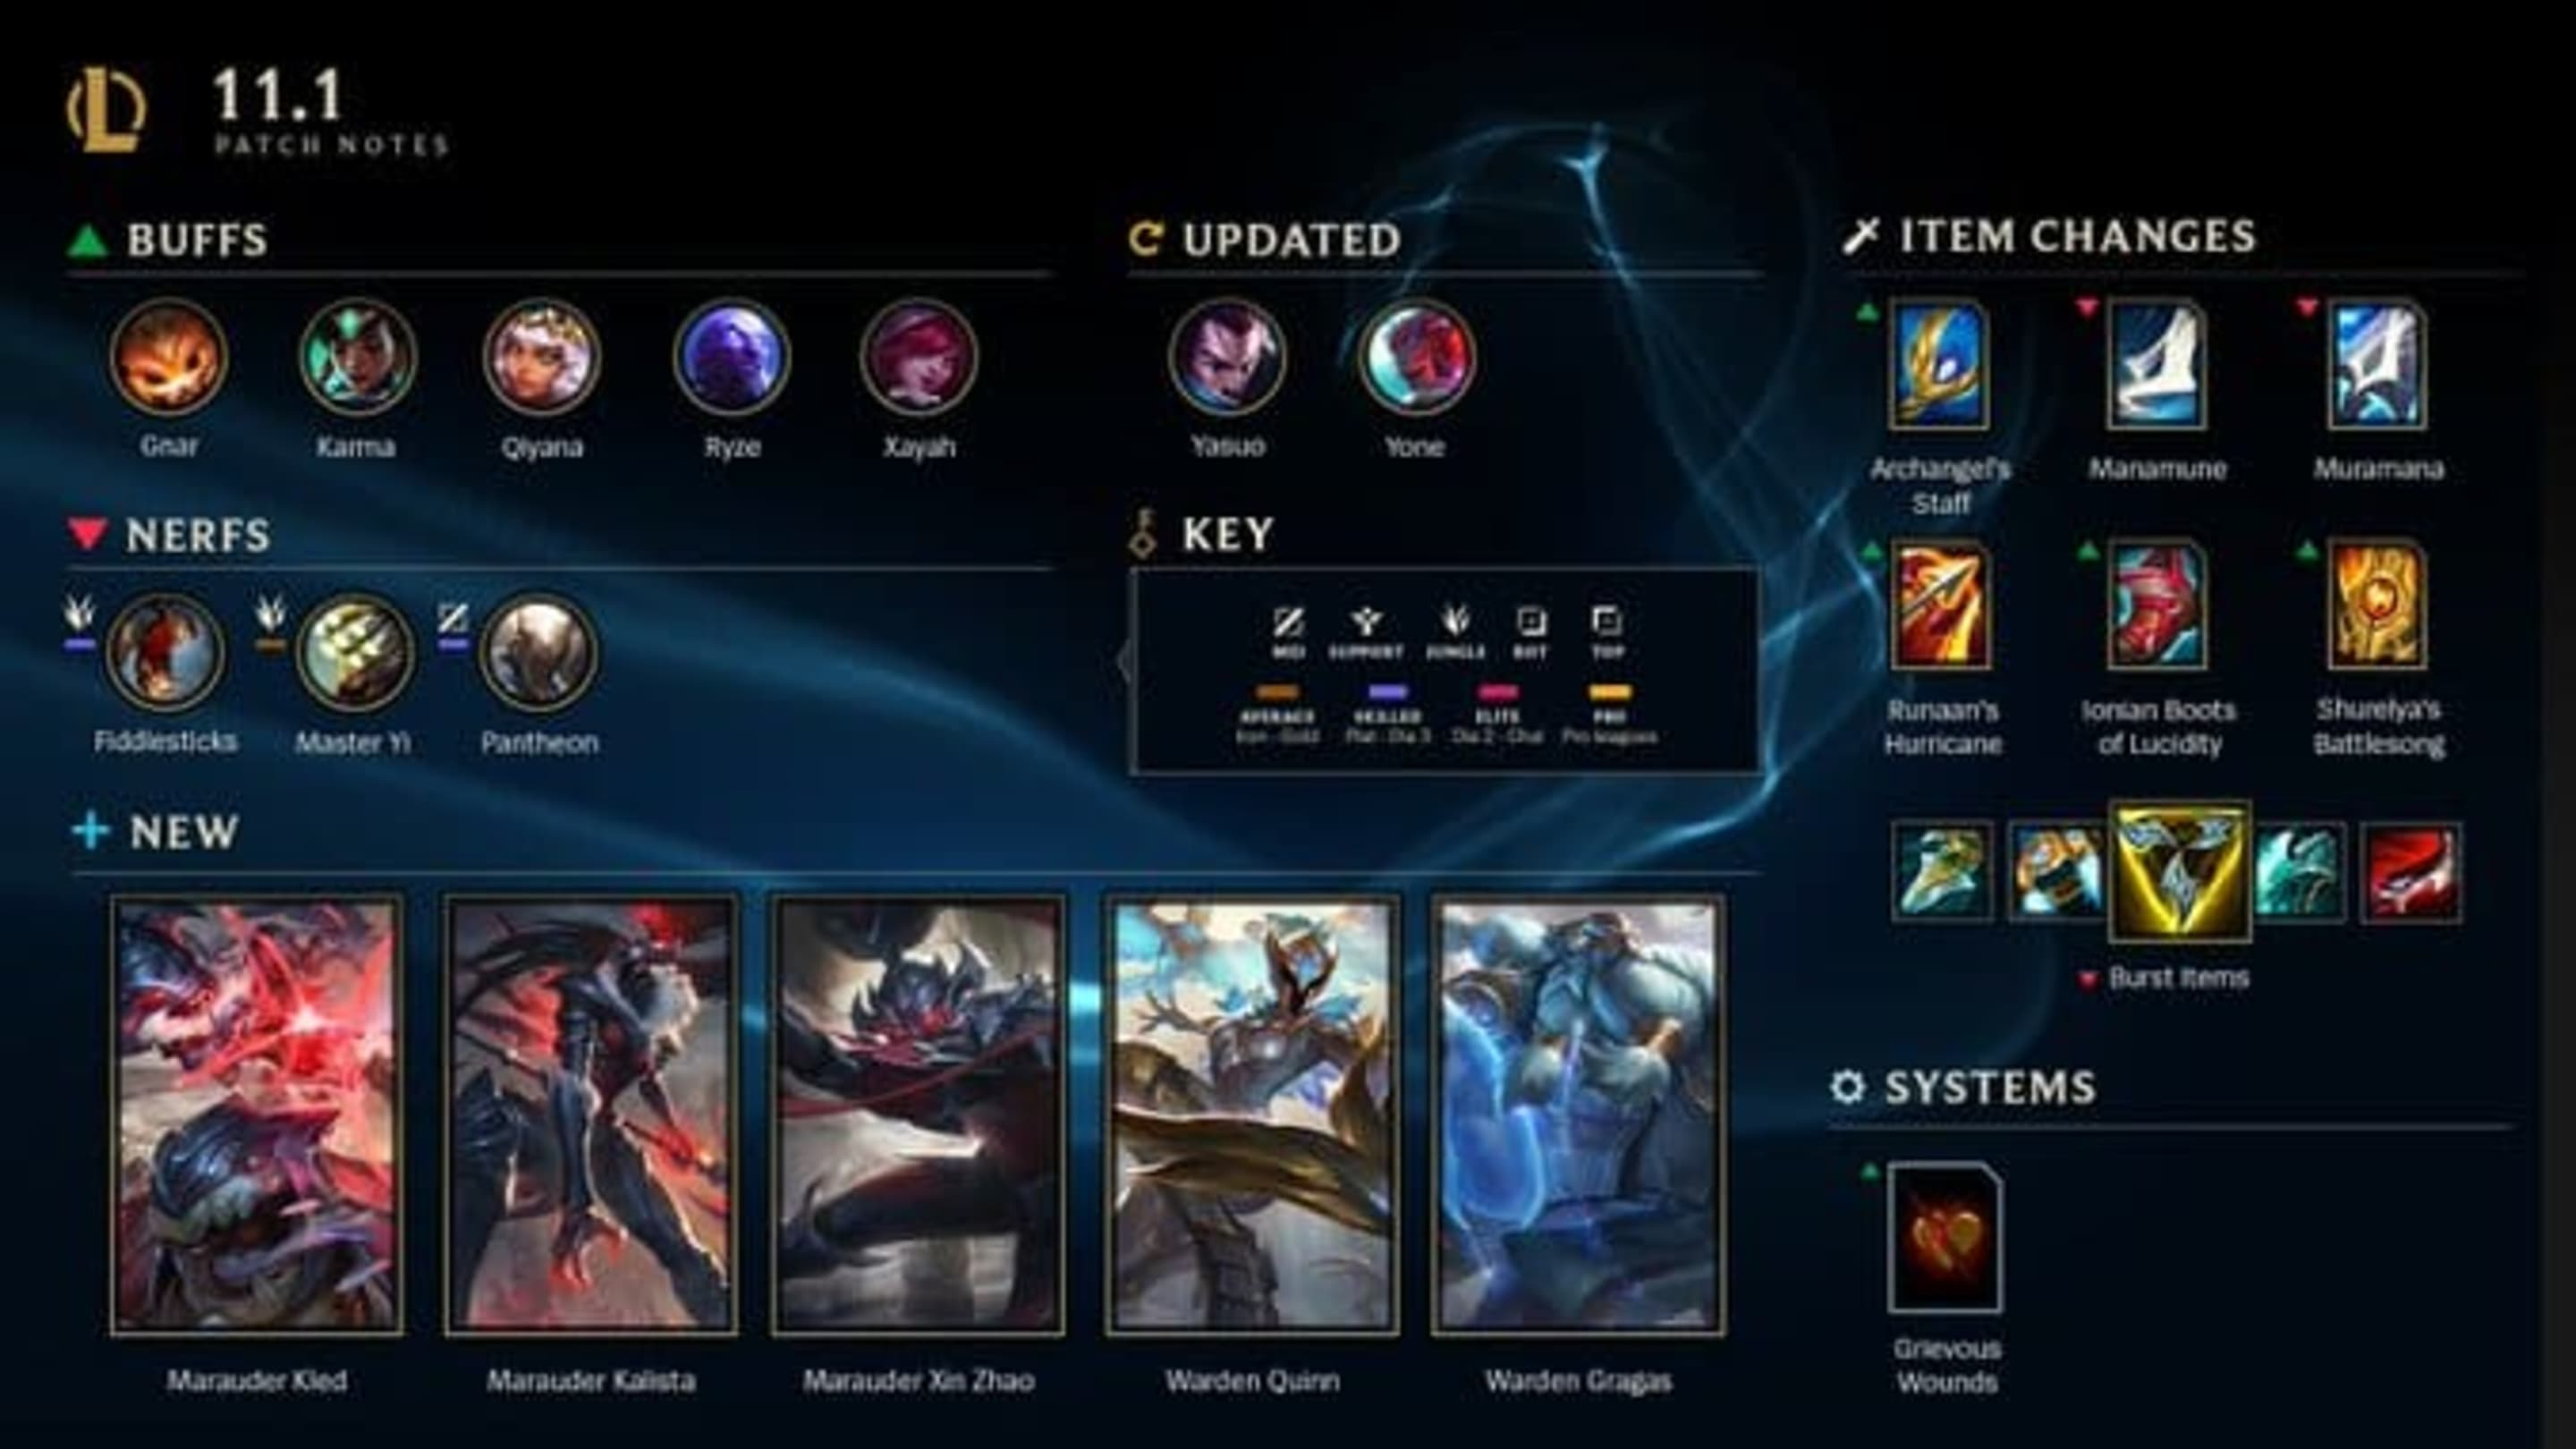 League of Legends Patch 11.1: Full List of Champion Changes